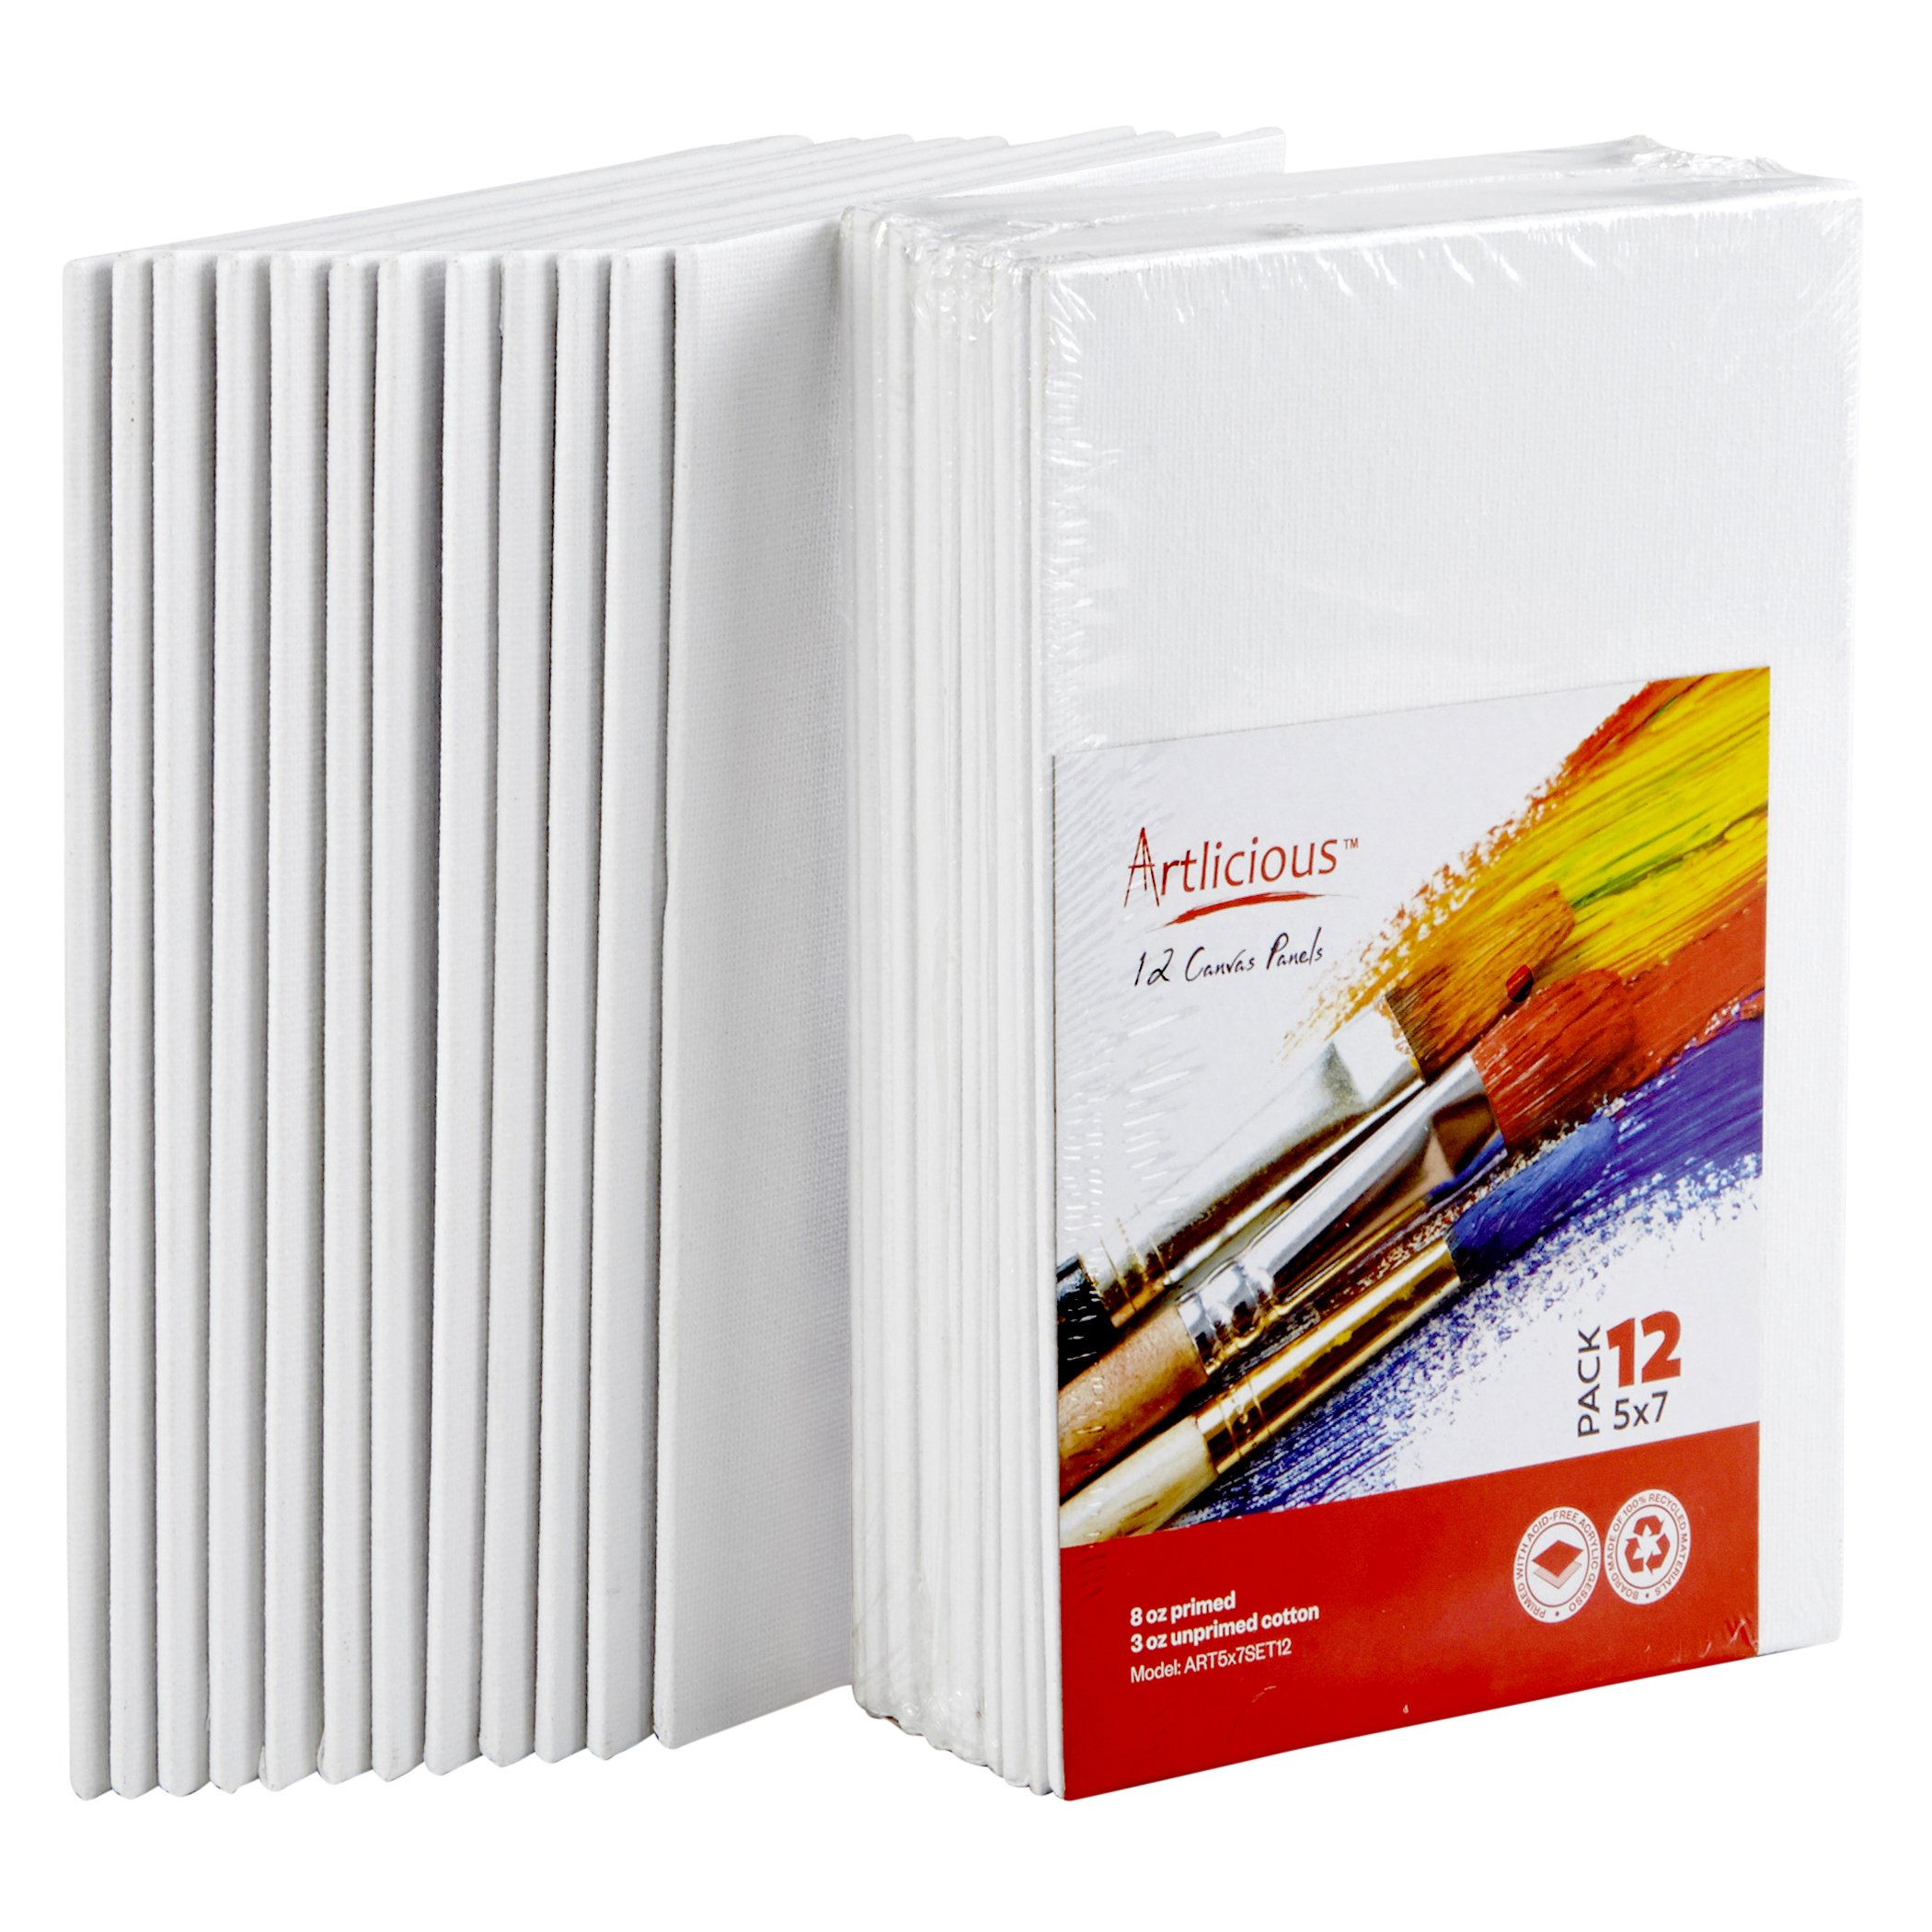 Artlicious Canvas Panels 24 Pack - 5''X7'' Super Value Pack- Artist Canvas Boards for Painting